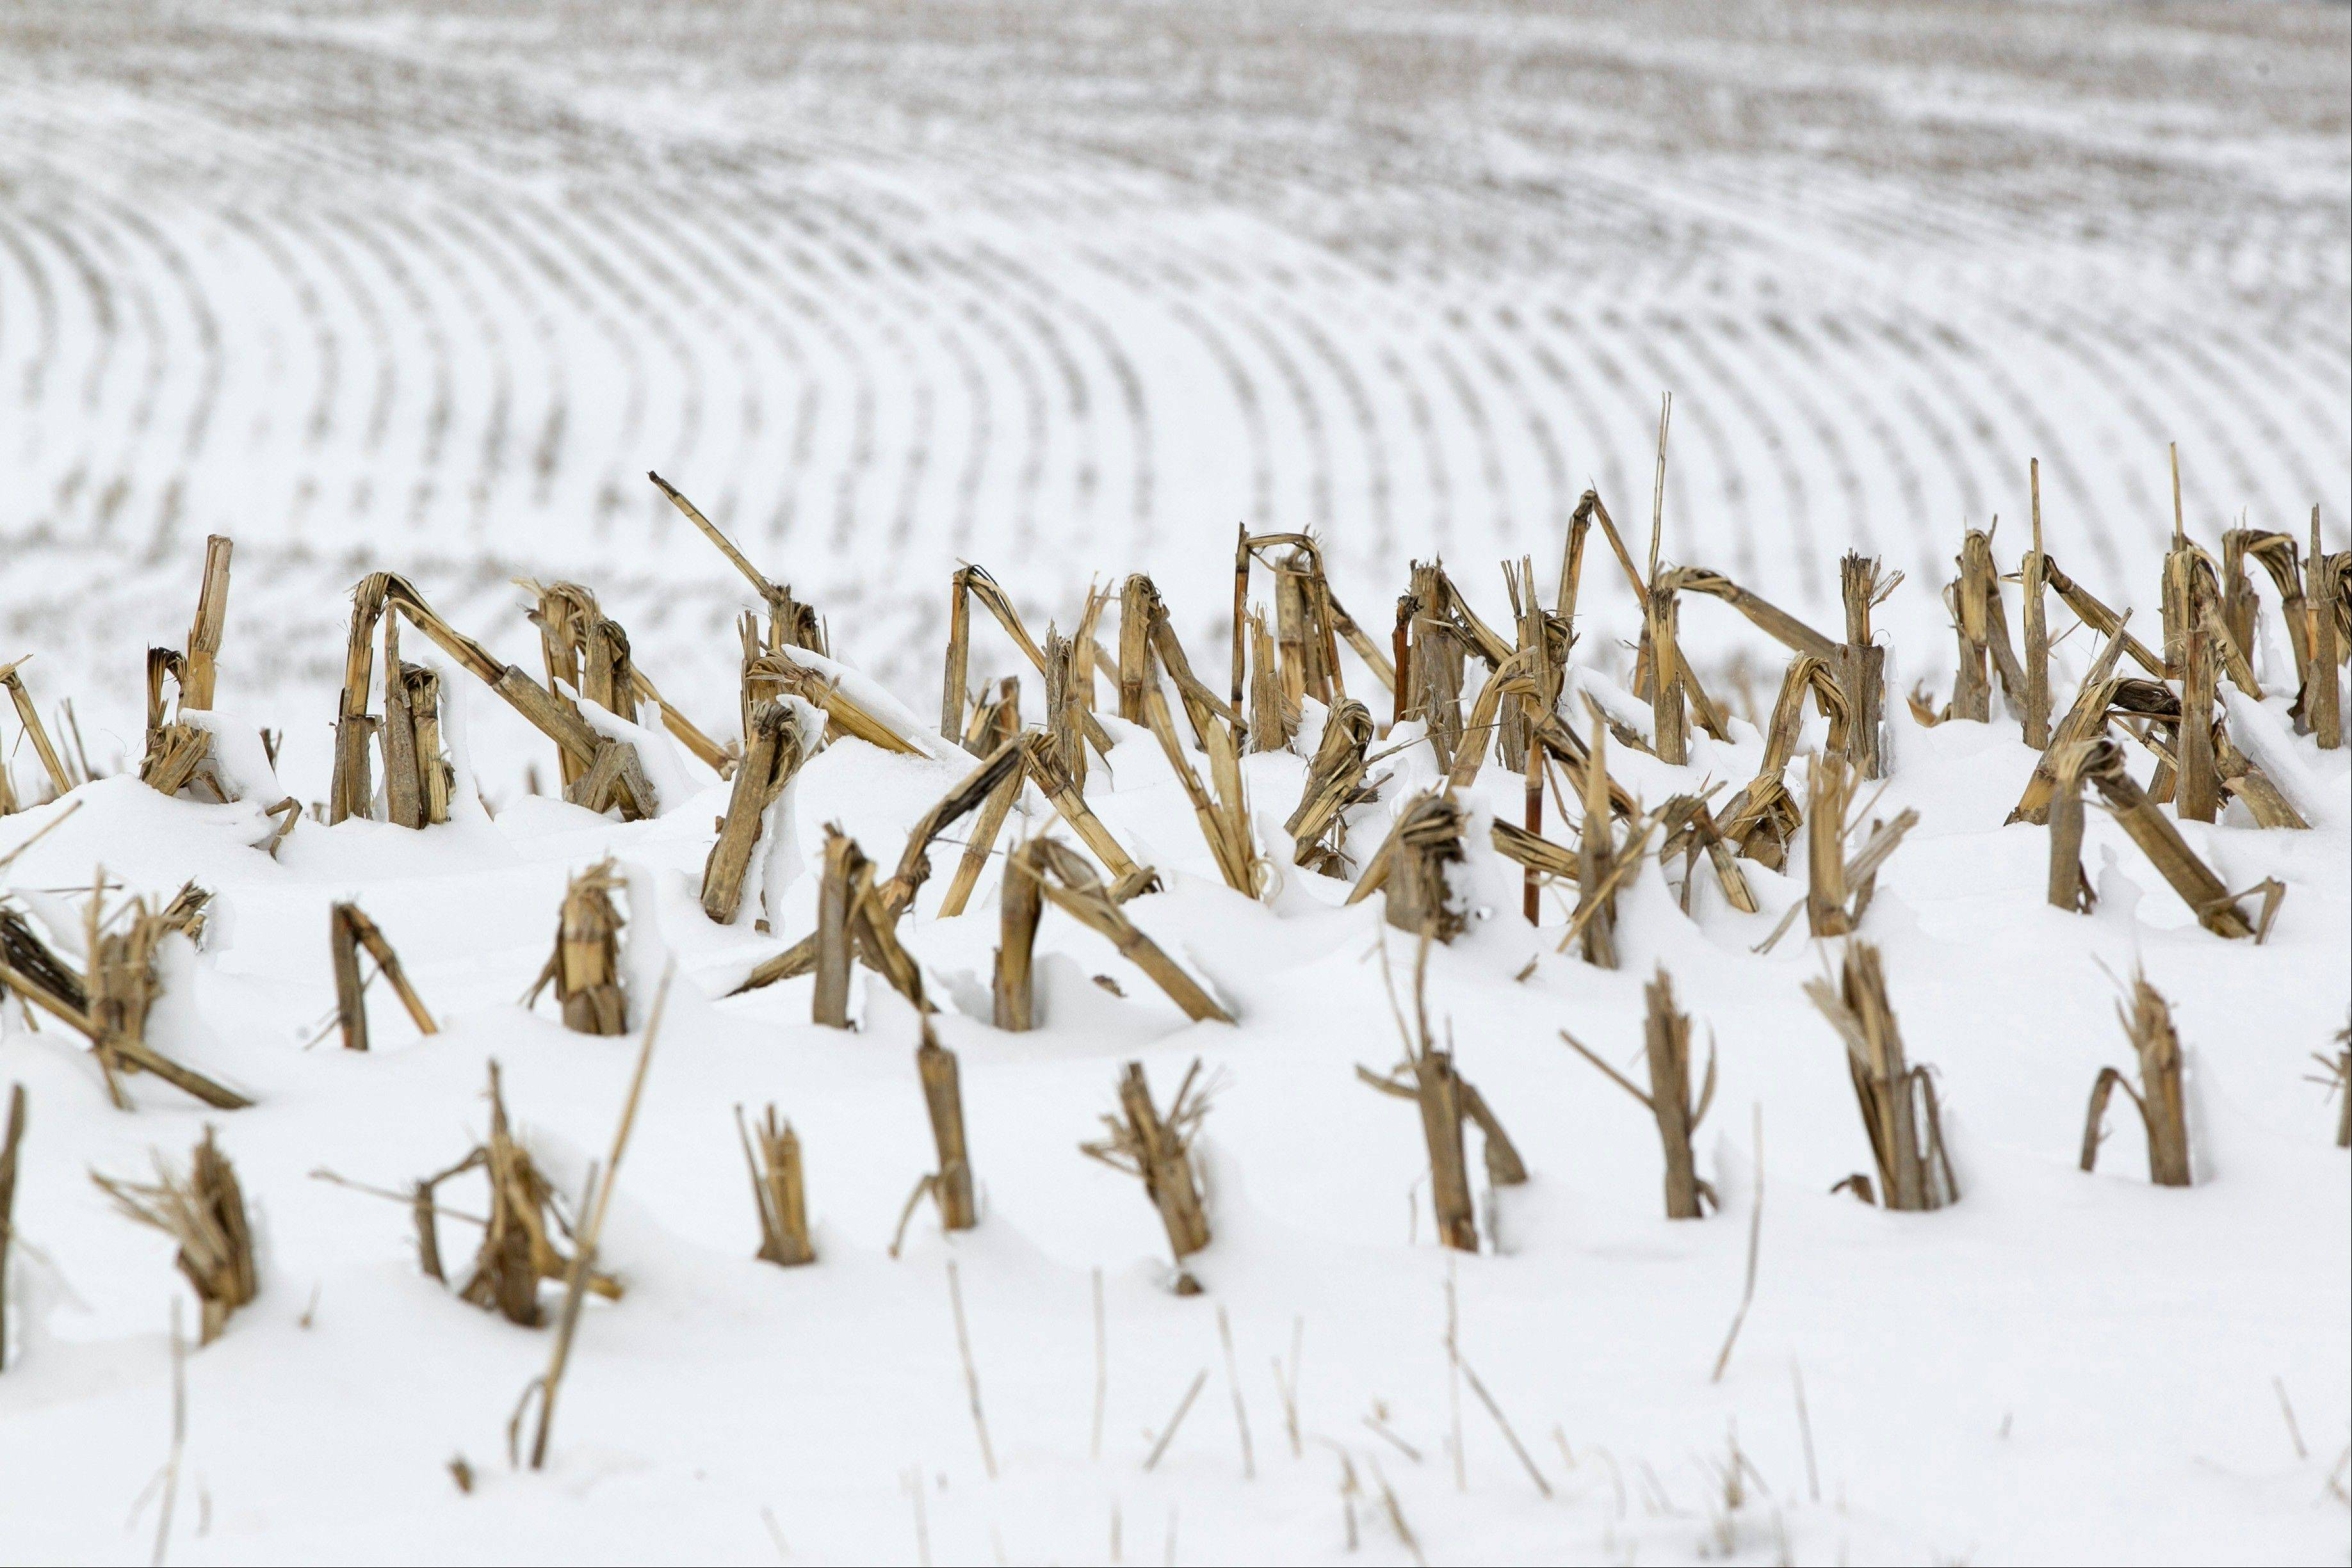 Corn stalks stand in a snowy field near La Vista, Neb. Despite getting some big storms in December, much of the U.S. is still desperate for relief from the nation�s longest dry spell in decades. And experts say it will take an absurd amount of snow to ease the woes of farmers and ranchers.